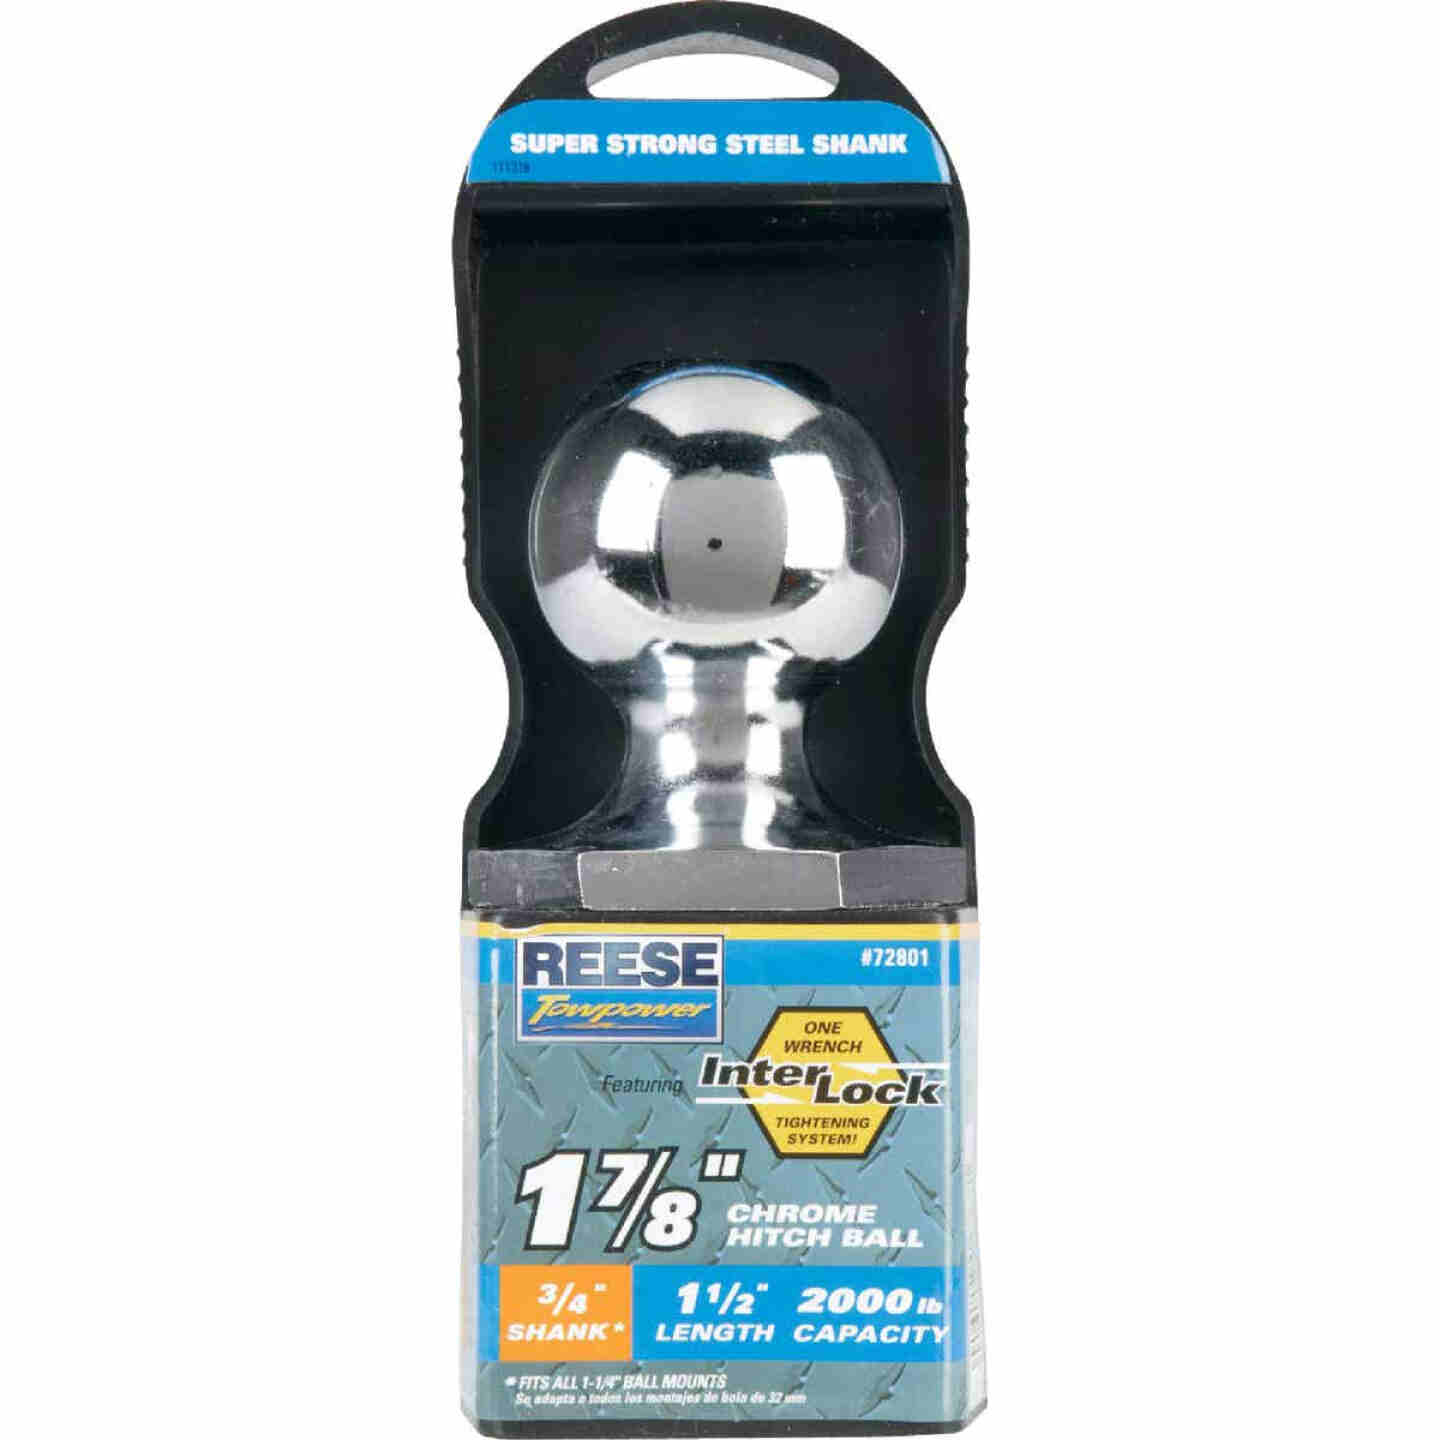 Reese Towpower Class I Interlock Hitch Ball, 1-7/8 In. x 3/4 In. x 1-1/2 In. Image 2